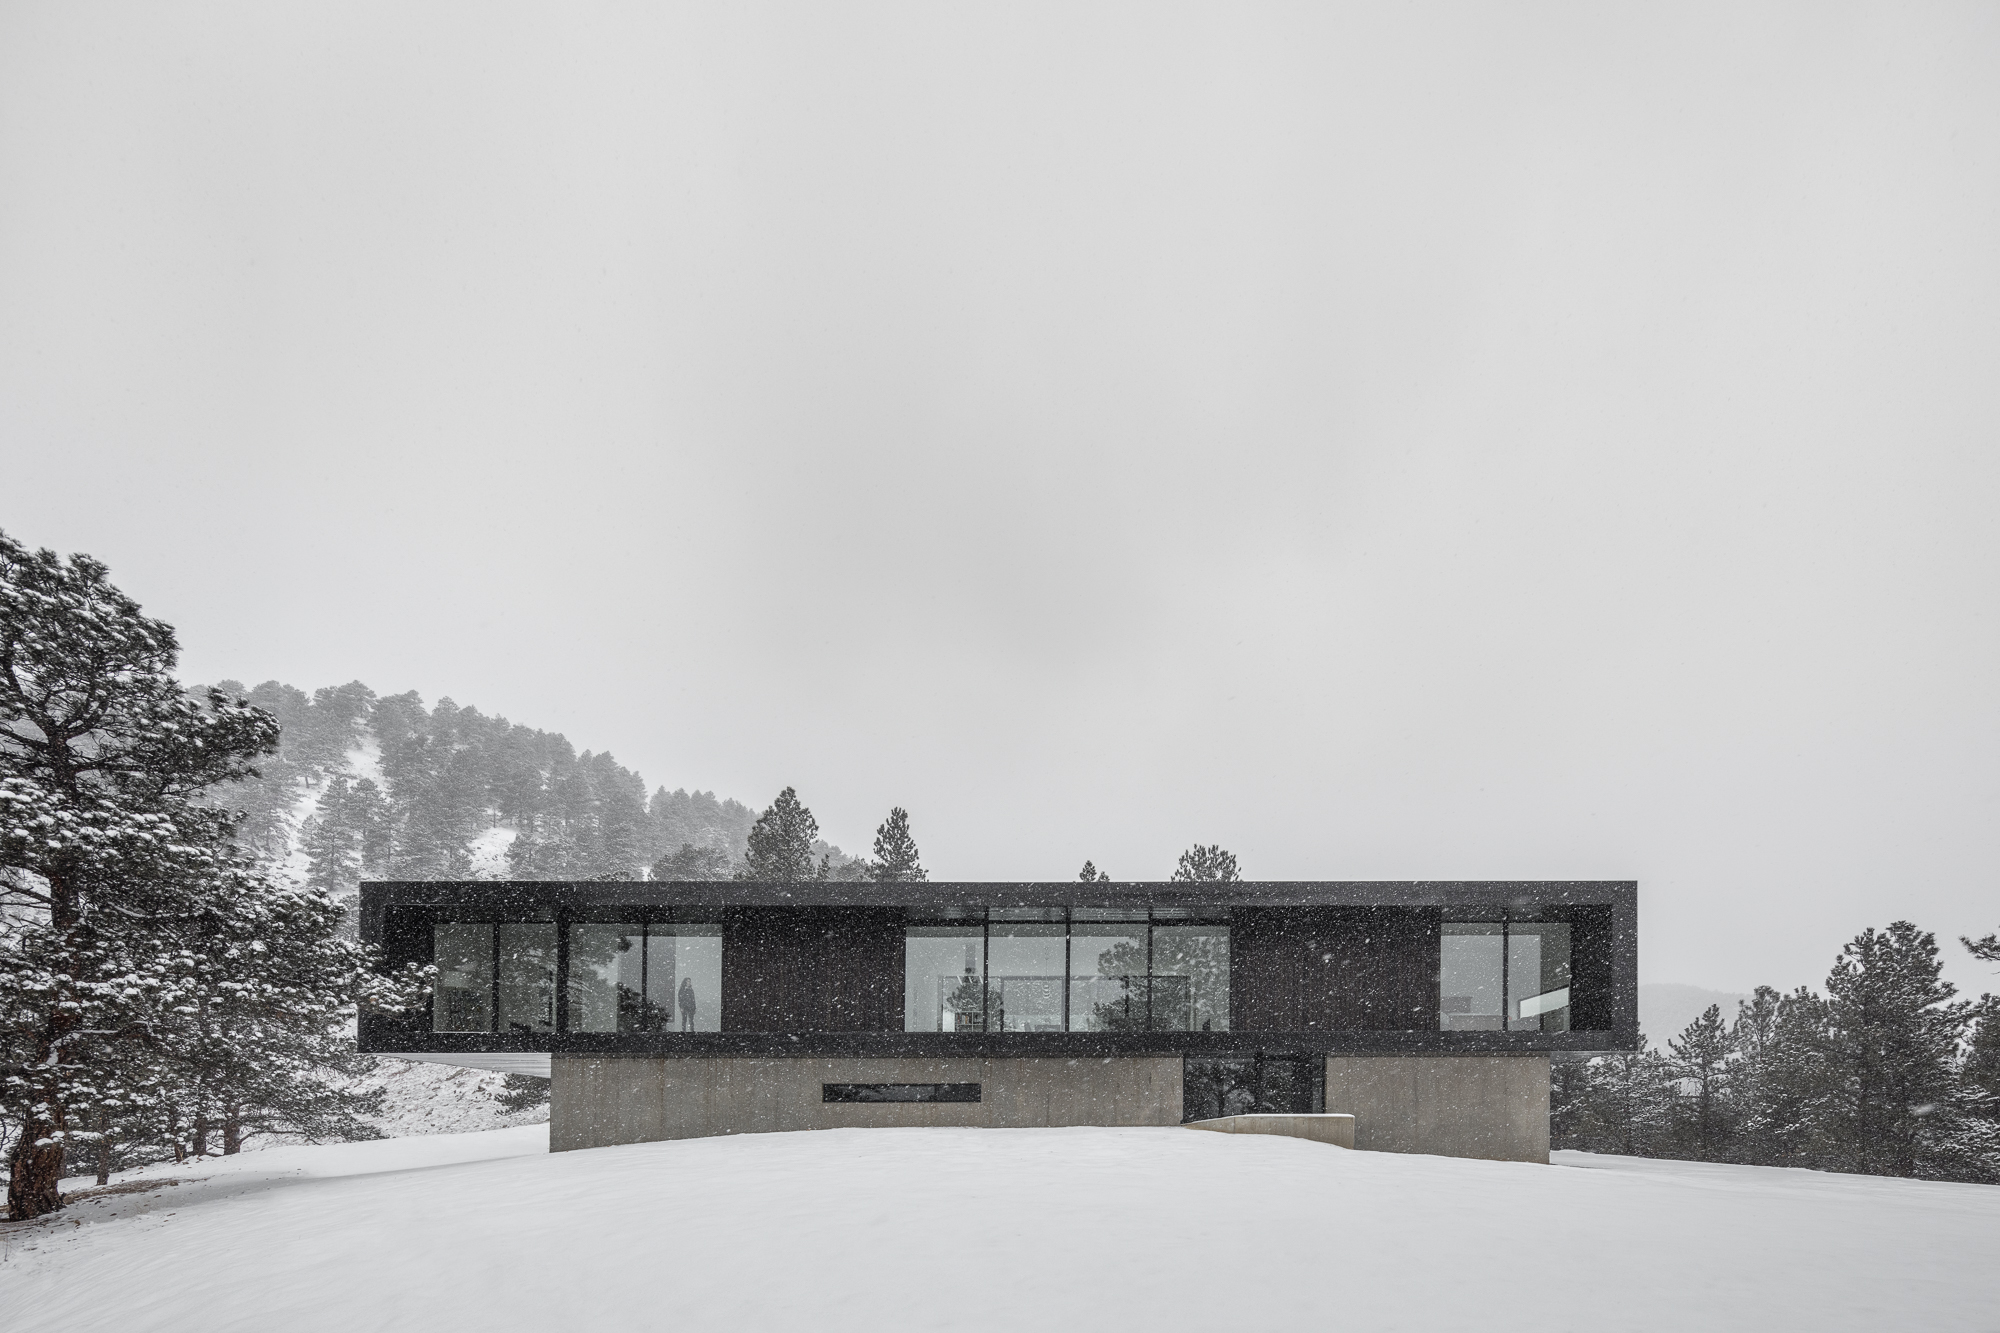 Studio B_Blur House_Winter_FINALS_01.jpg